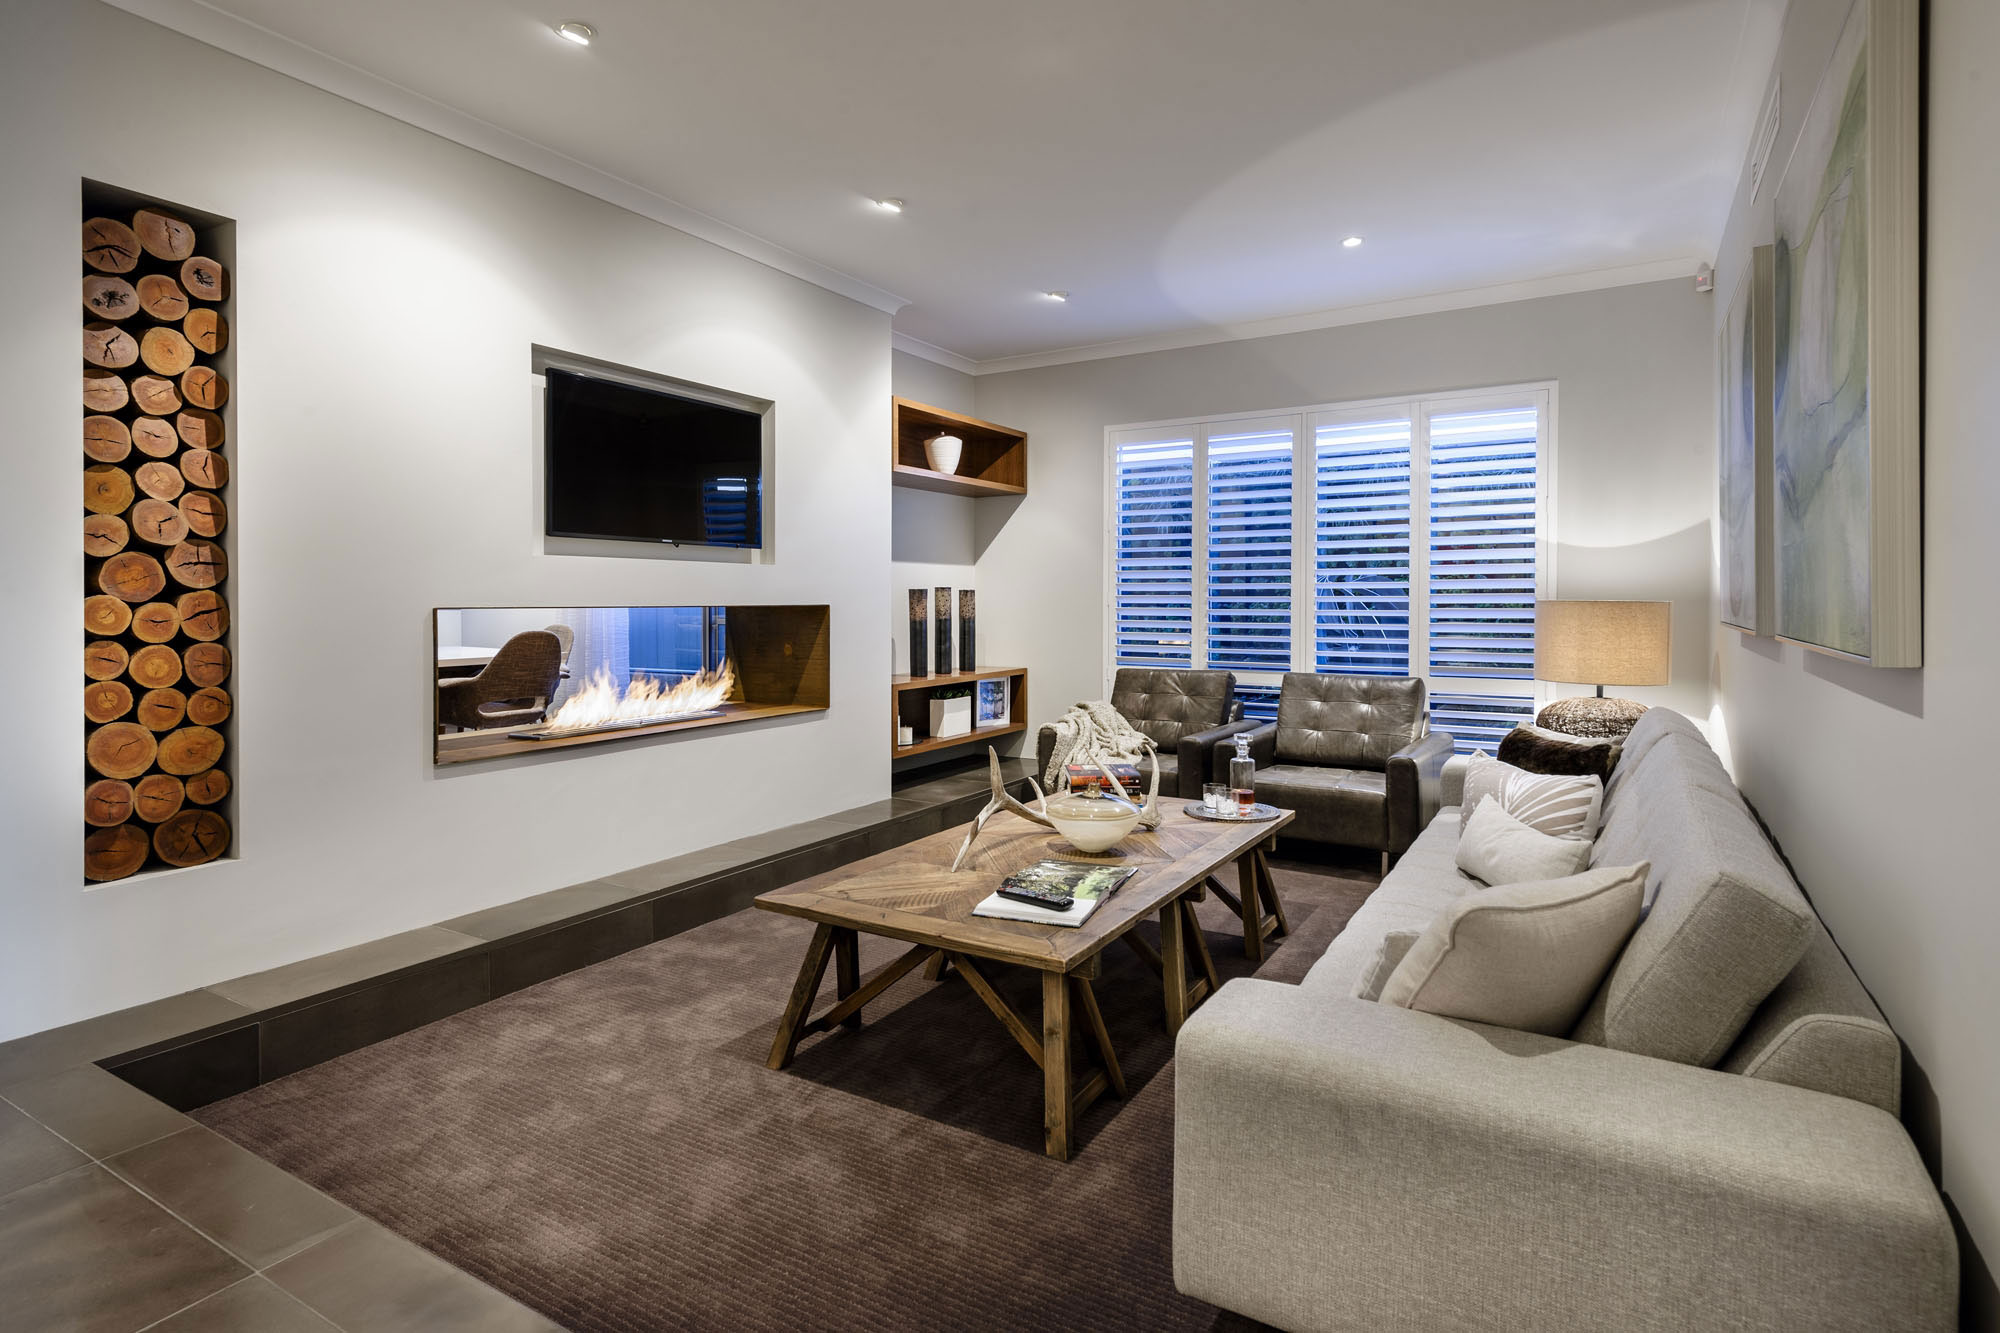 Contemporary Fireplace, Wood Store, Sofa, Rug, Modern Home in Wandi, Perth